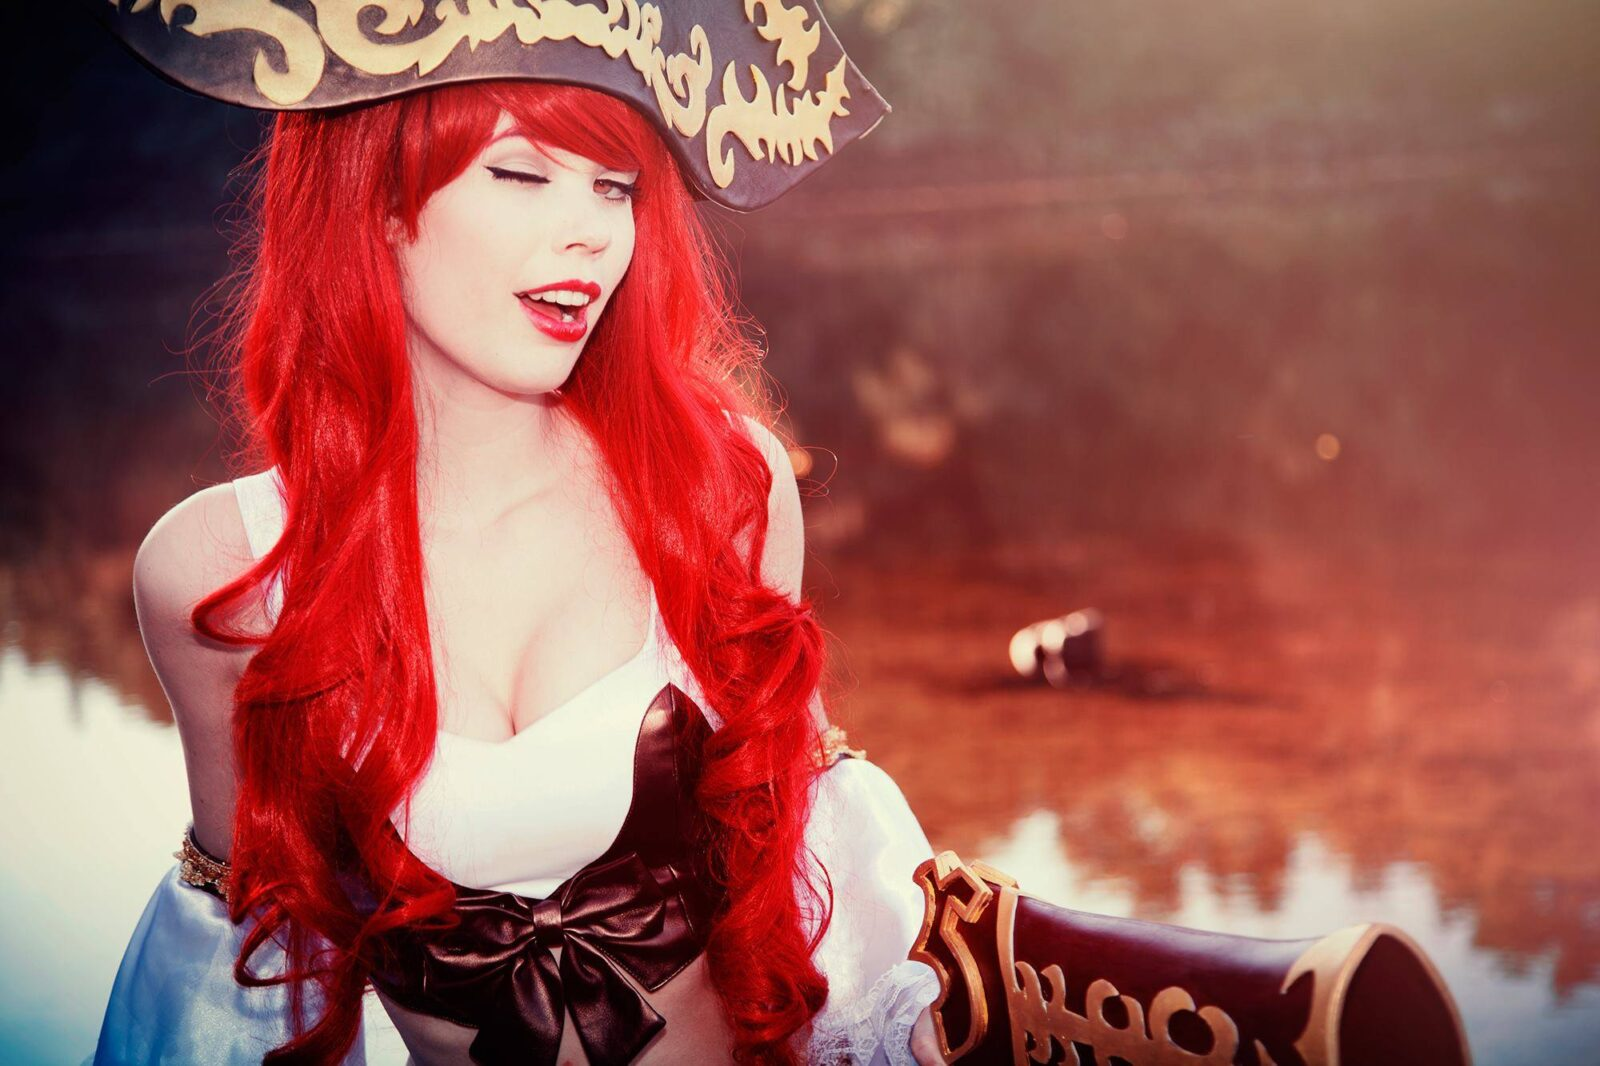 The League Of Legends Is Proud To Have Tine Marie Riis Cosplay